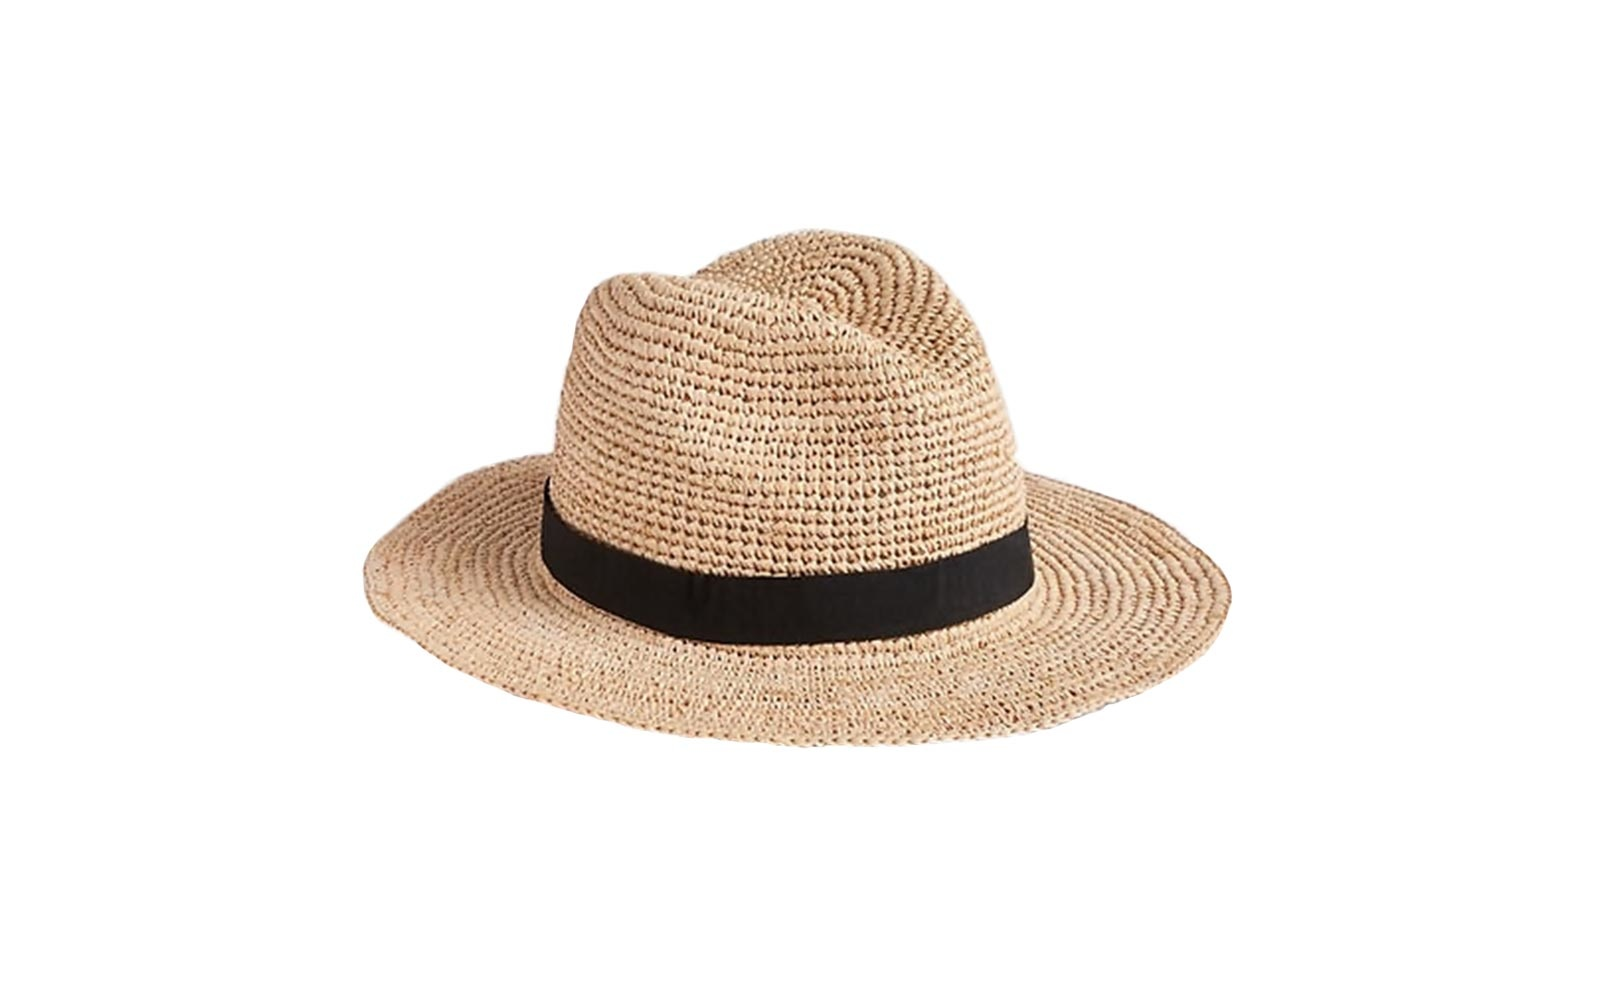 Gap straw hat